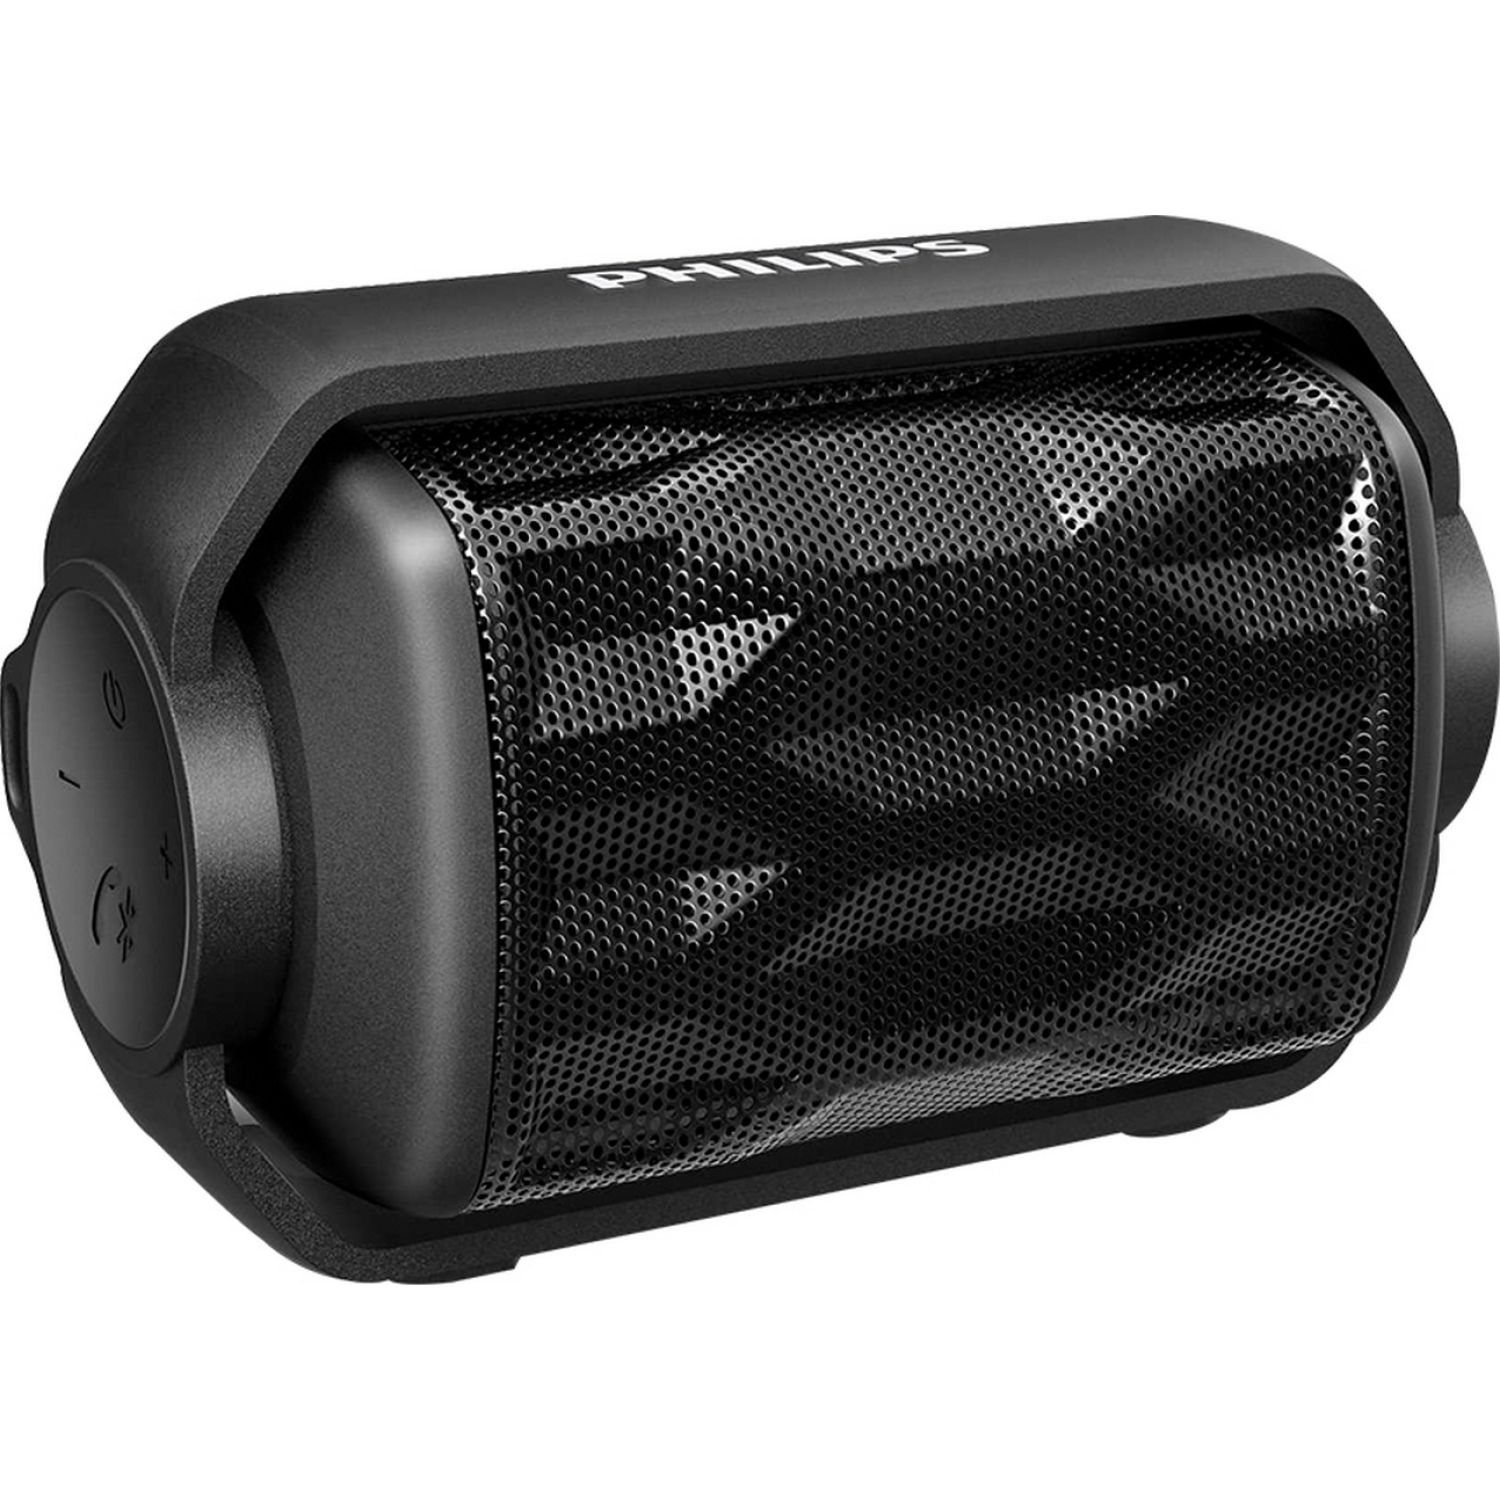 Philips Parlante Bluetooth Micrófono Integrado Negro Altavoces Bluetooth portátiles